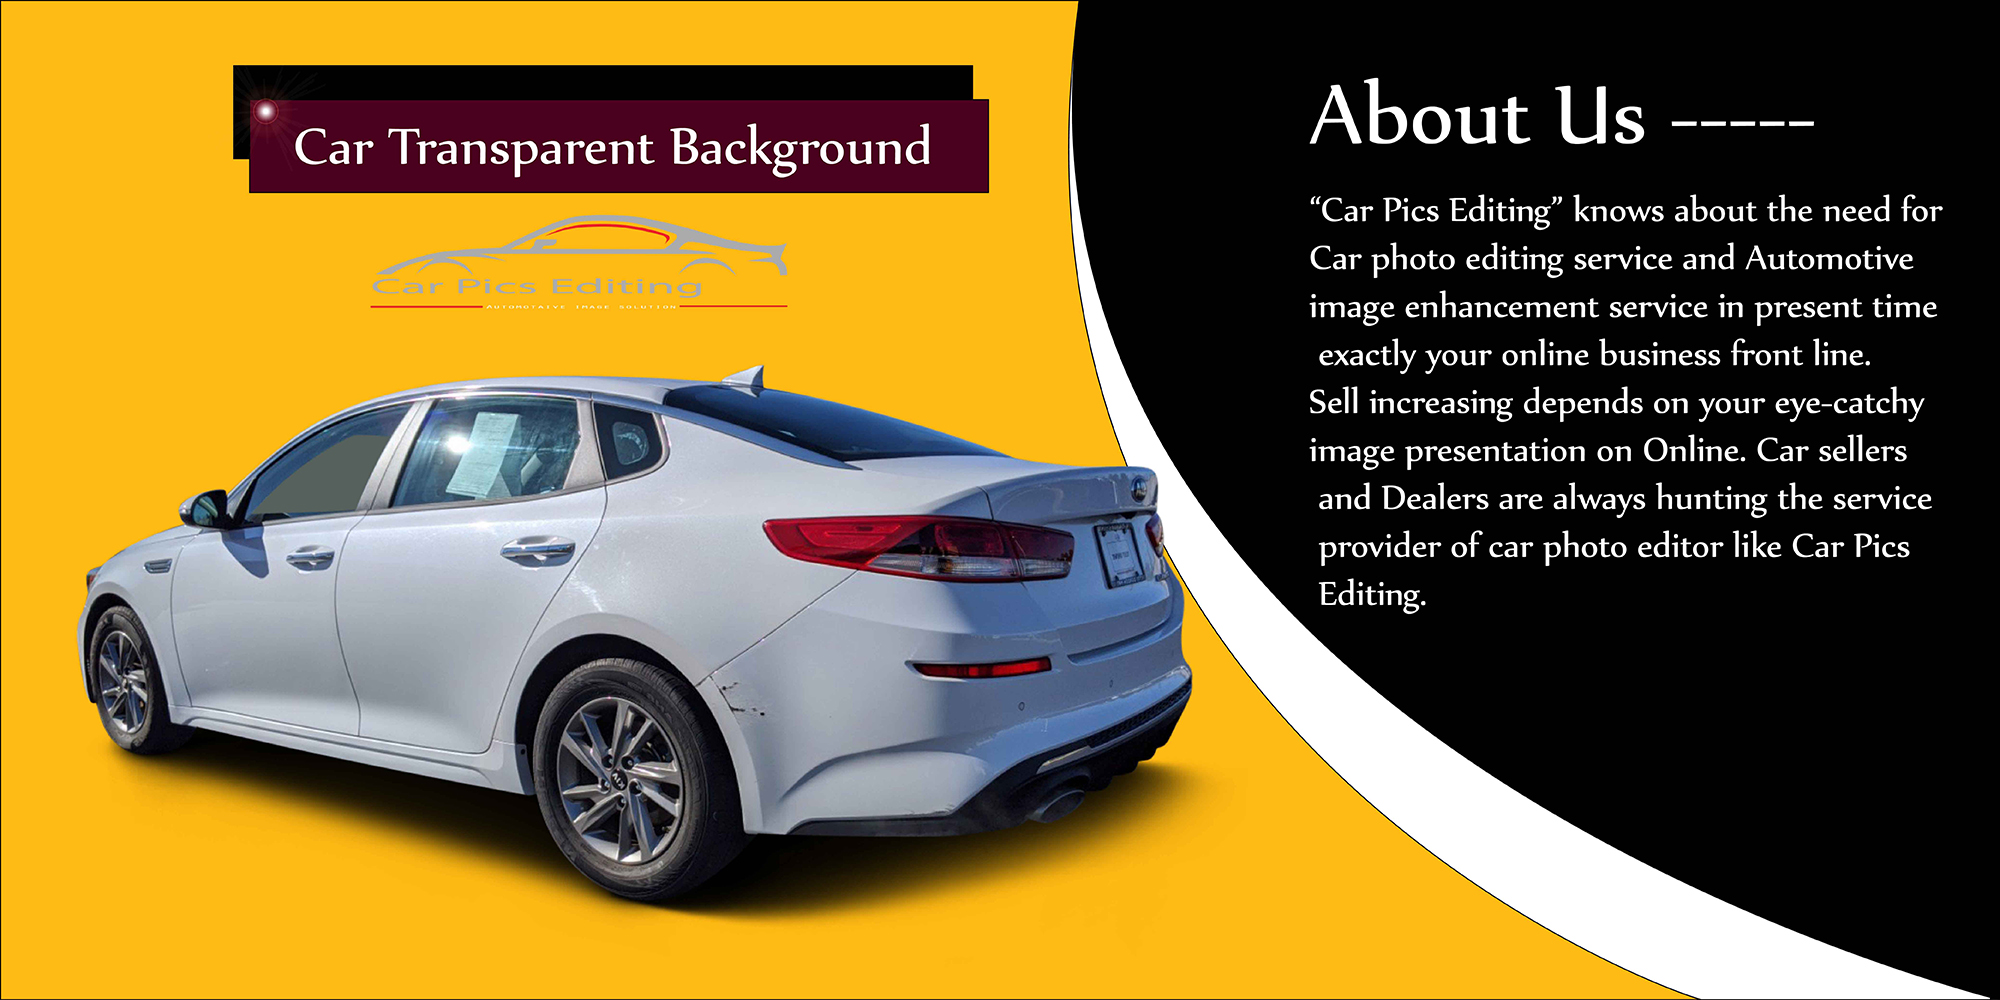 Car Transparent Background Is Bound To Make an Impact In Your Business-Car pics editing 2